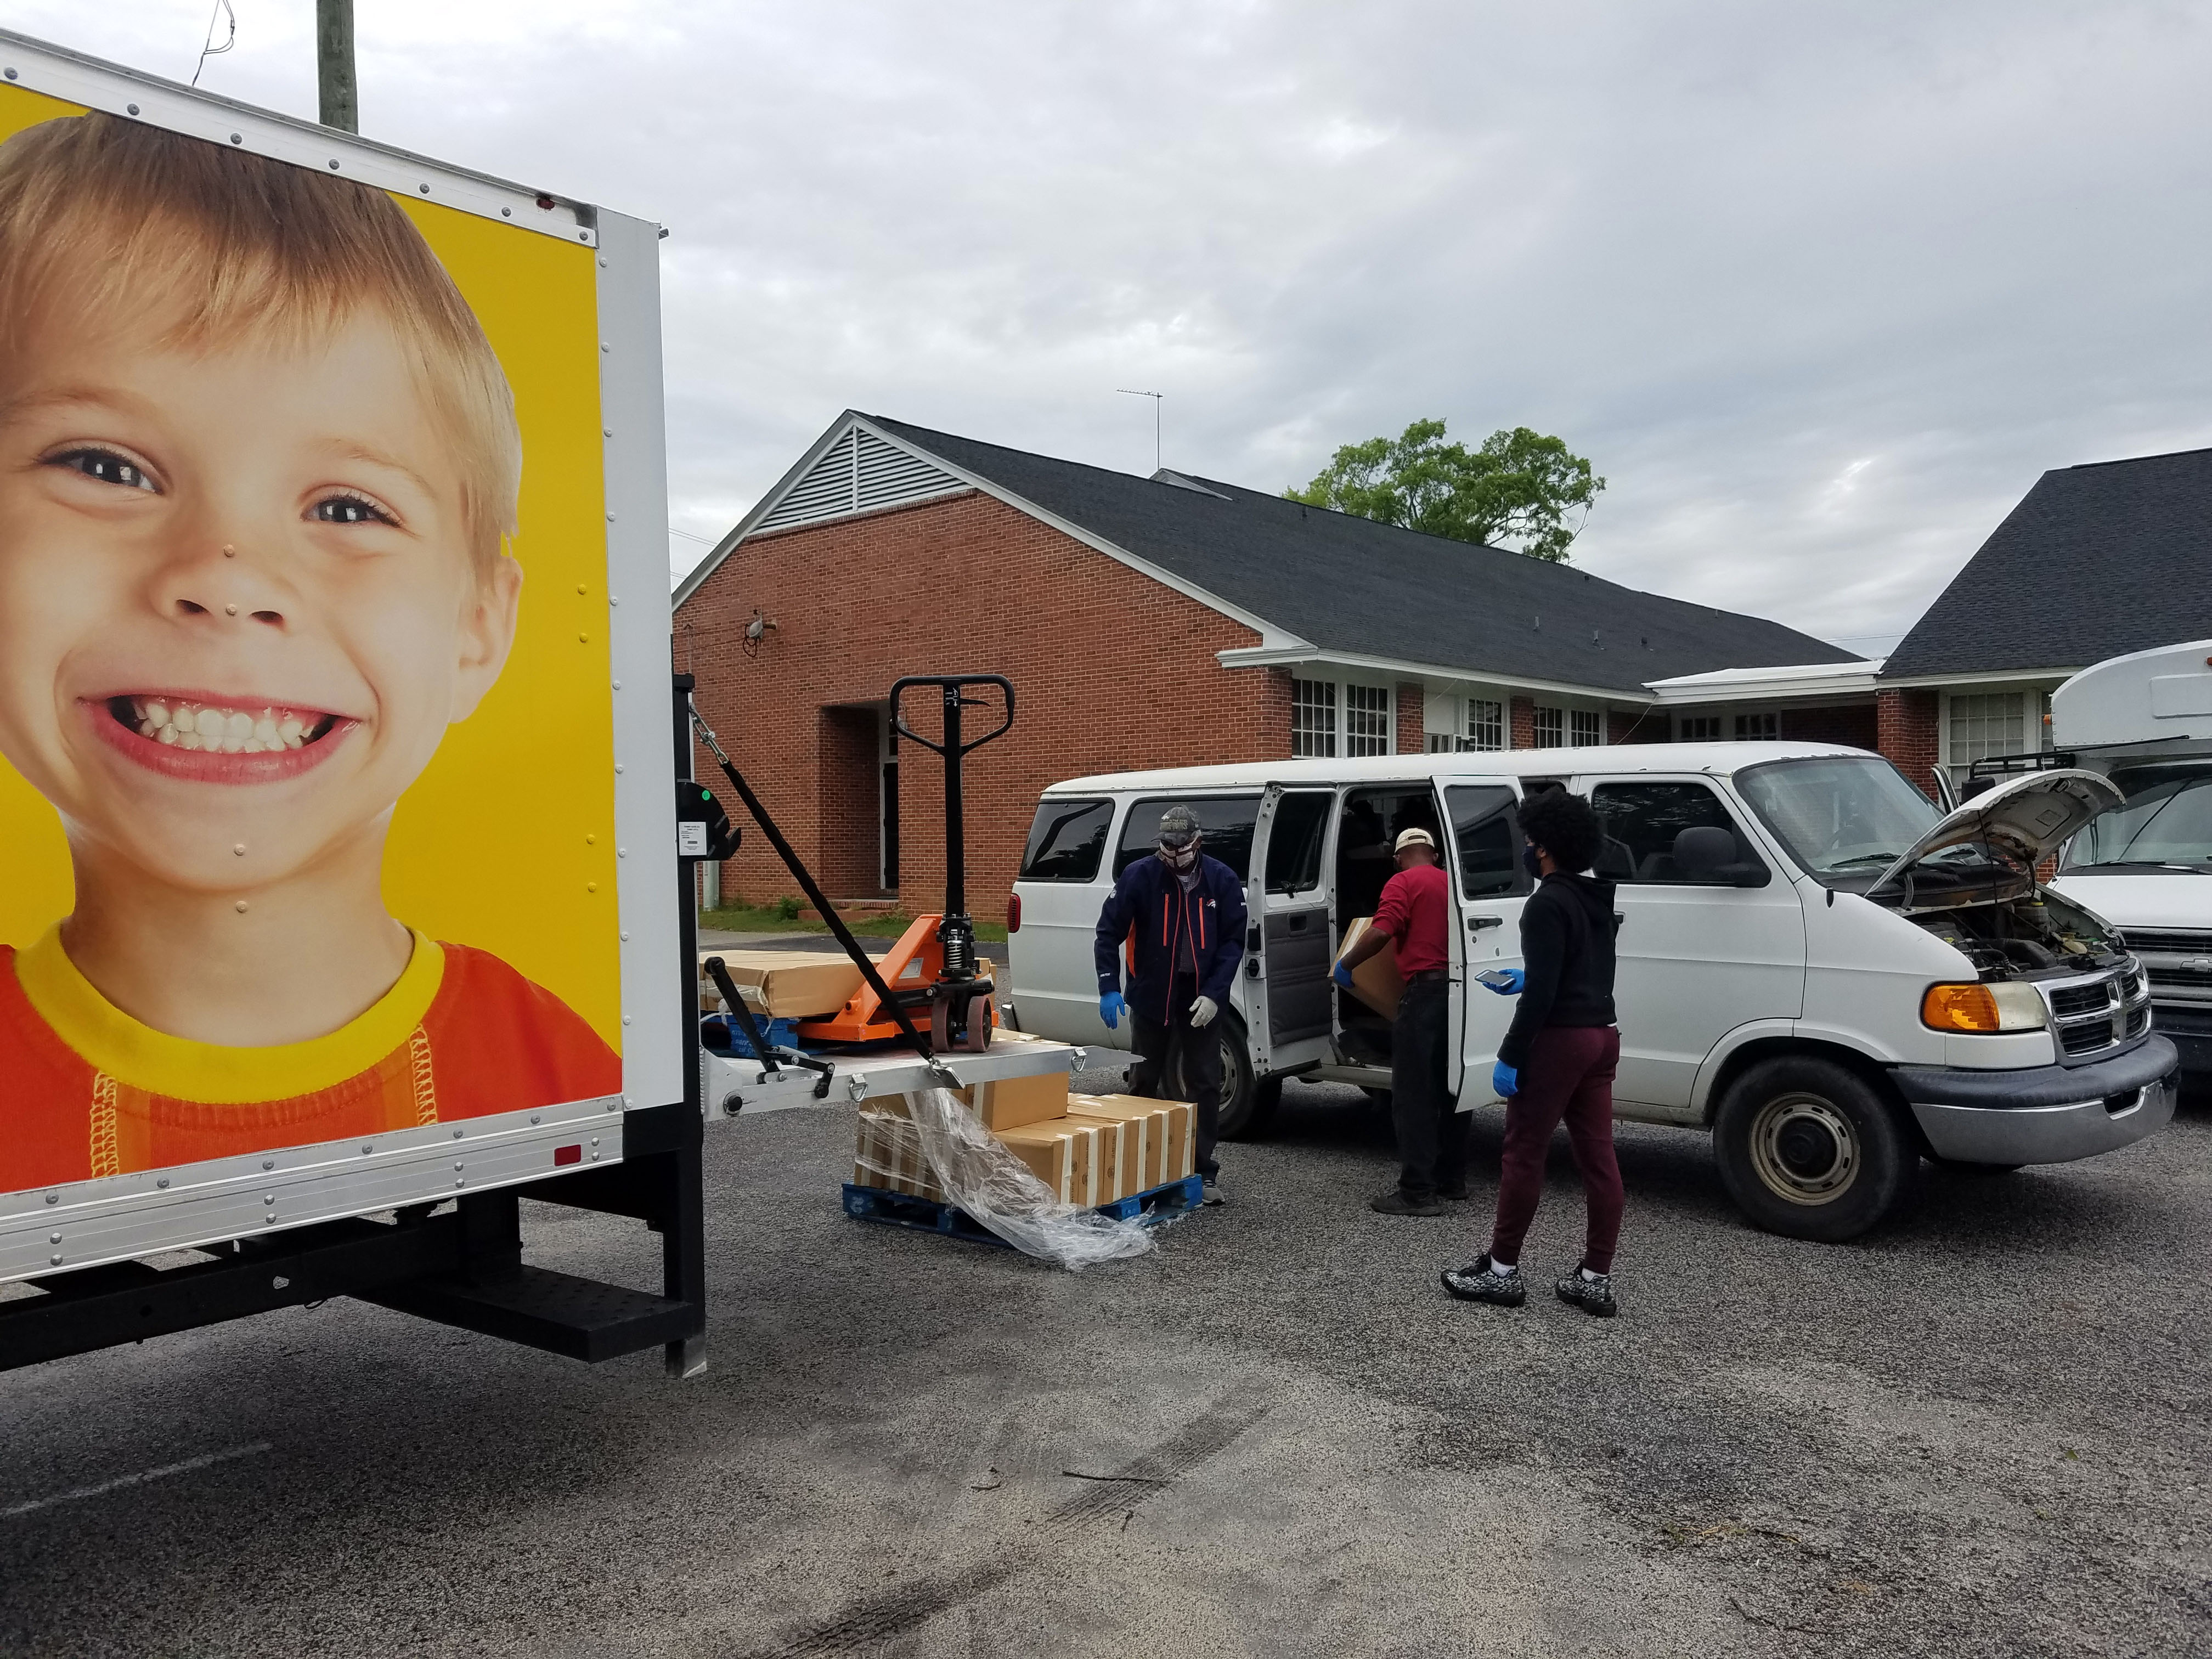 Community organizations partner to deliver food in Chesterfield County